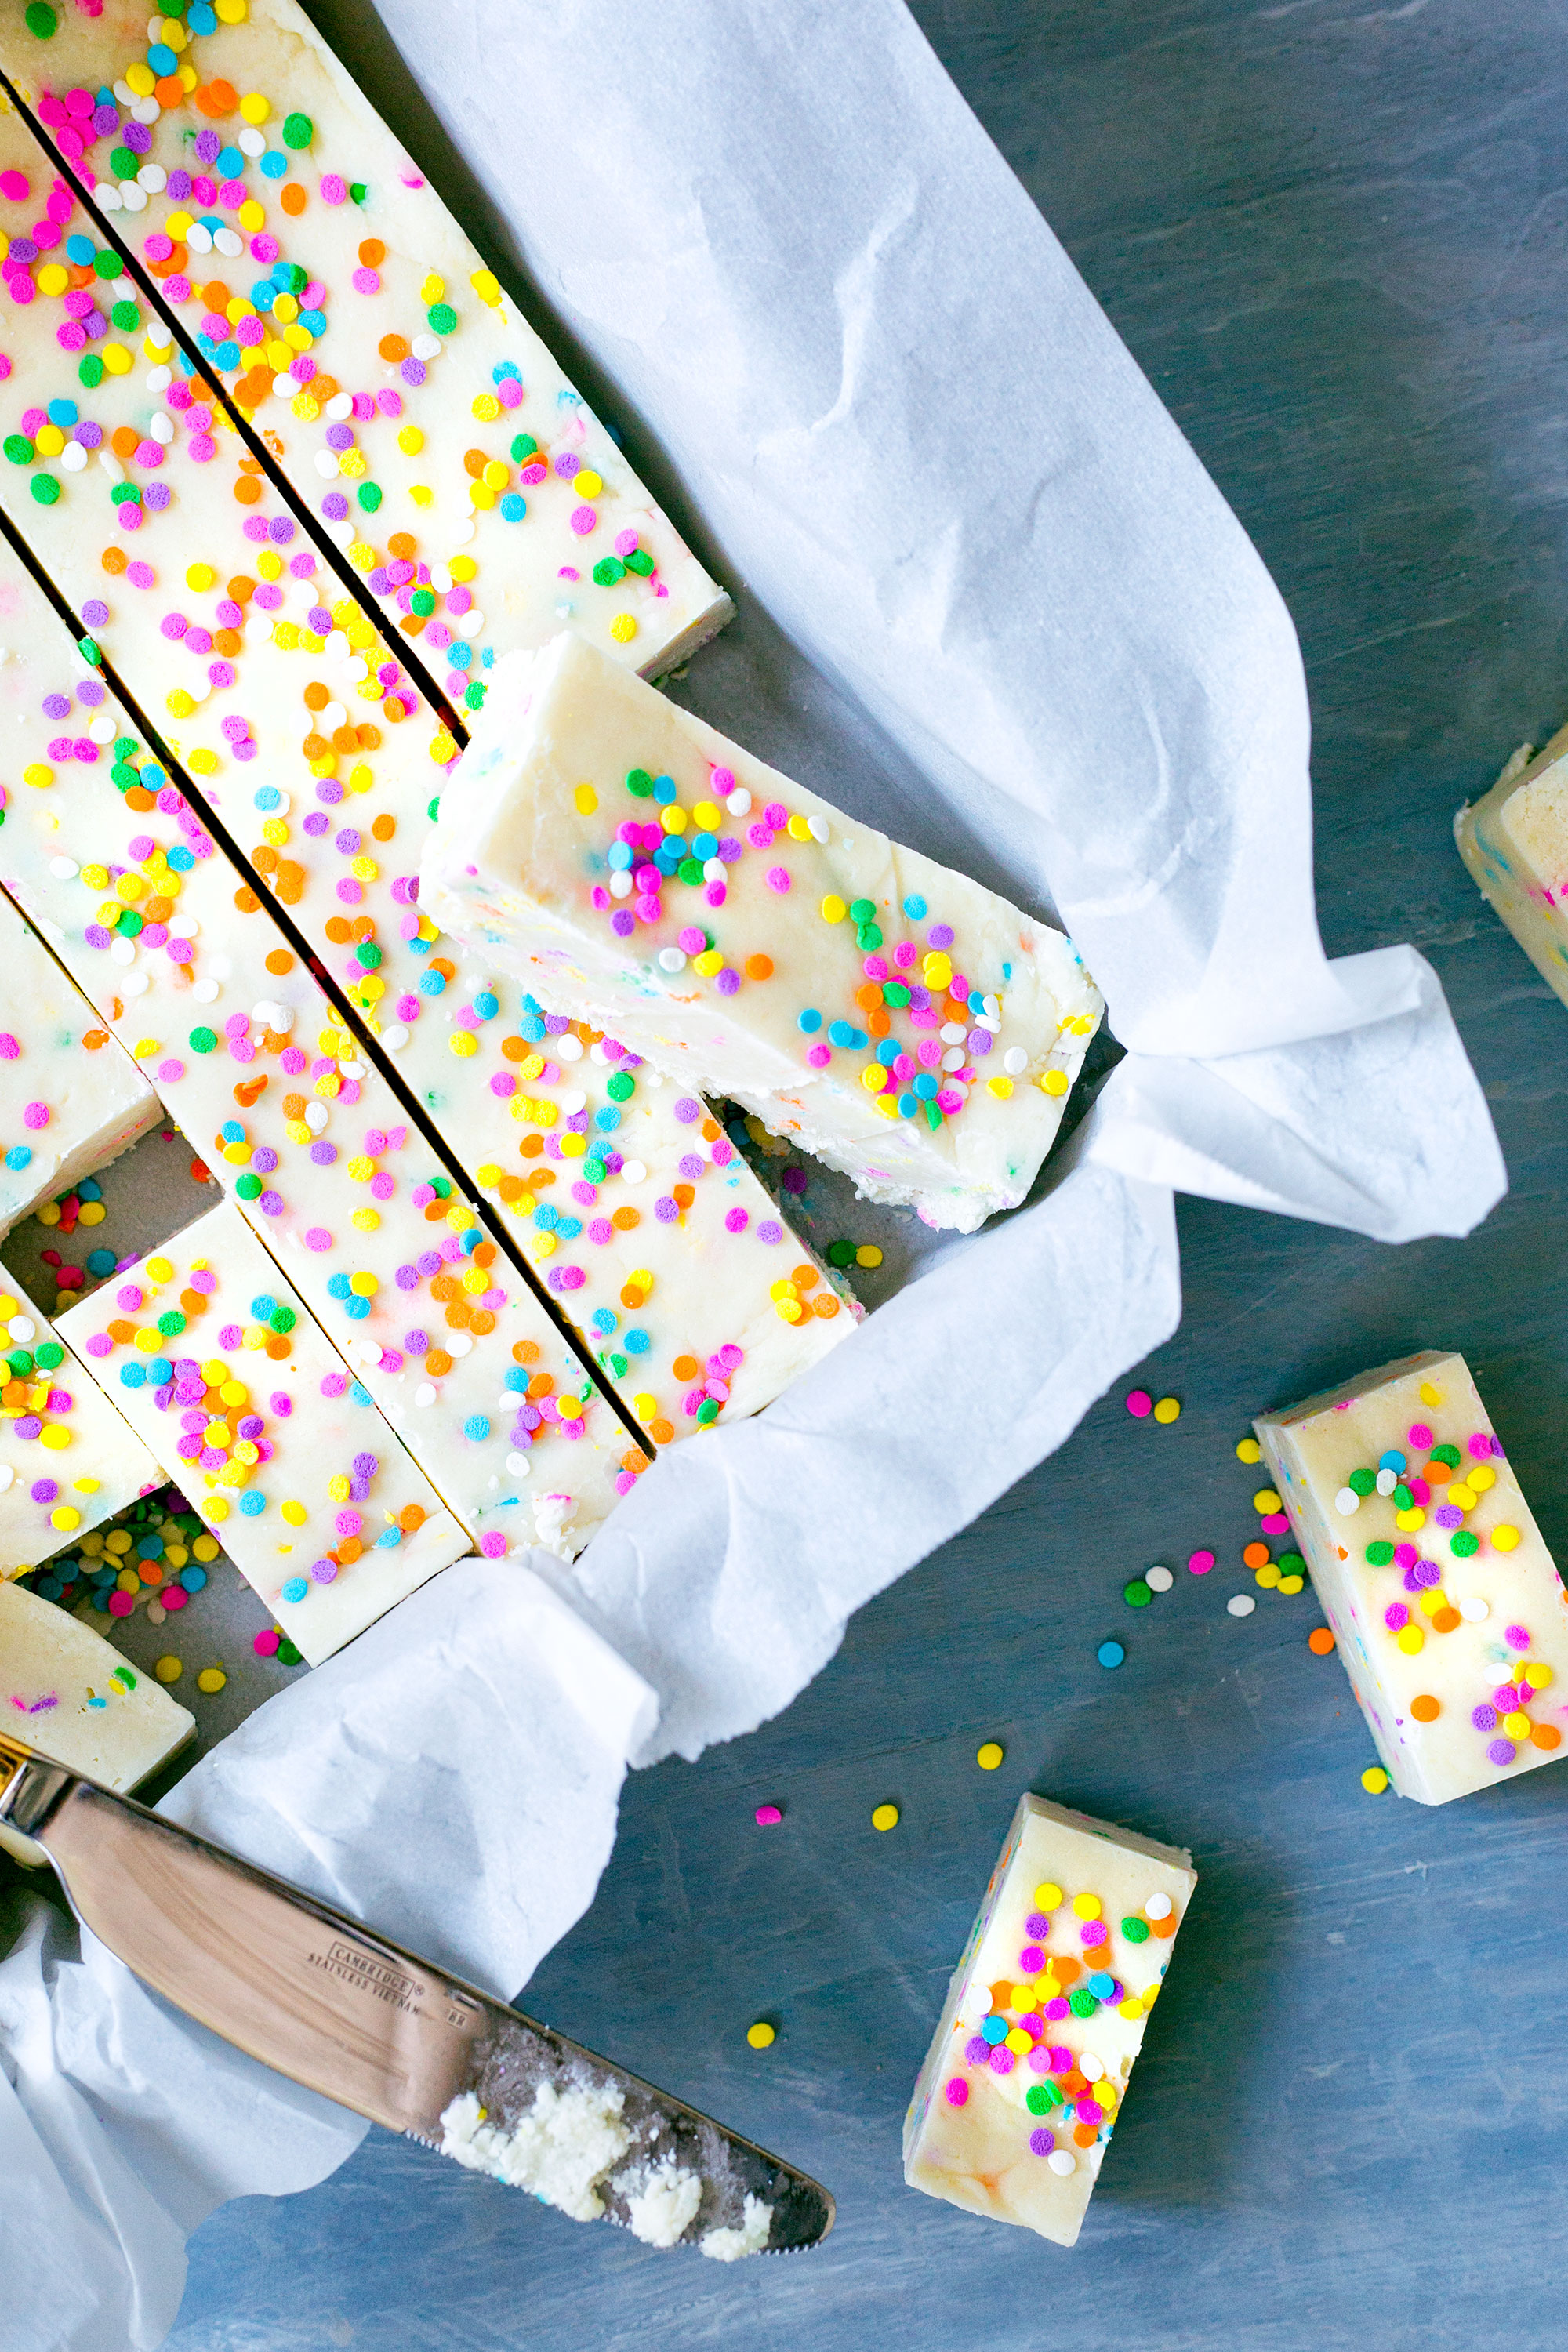 3 Unexpected Ways to Use a Box of Cake Mix | Kitchn